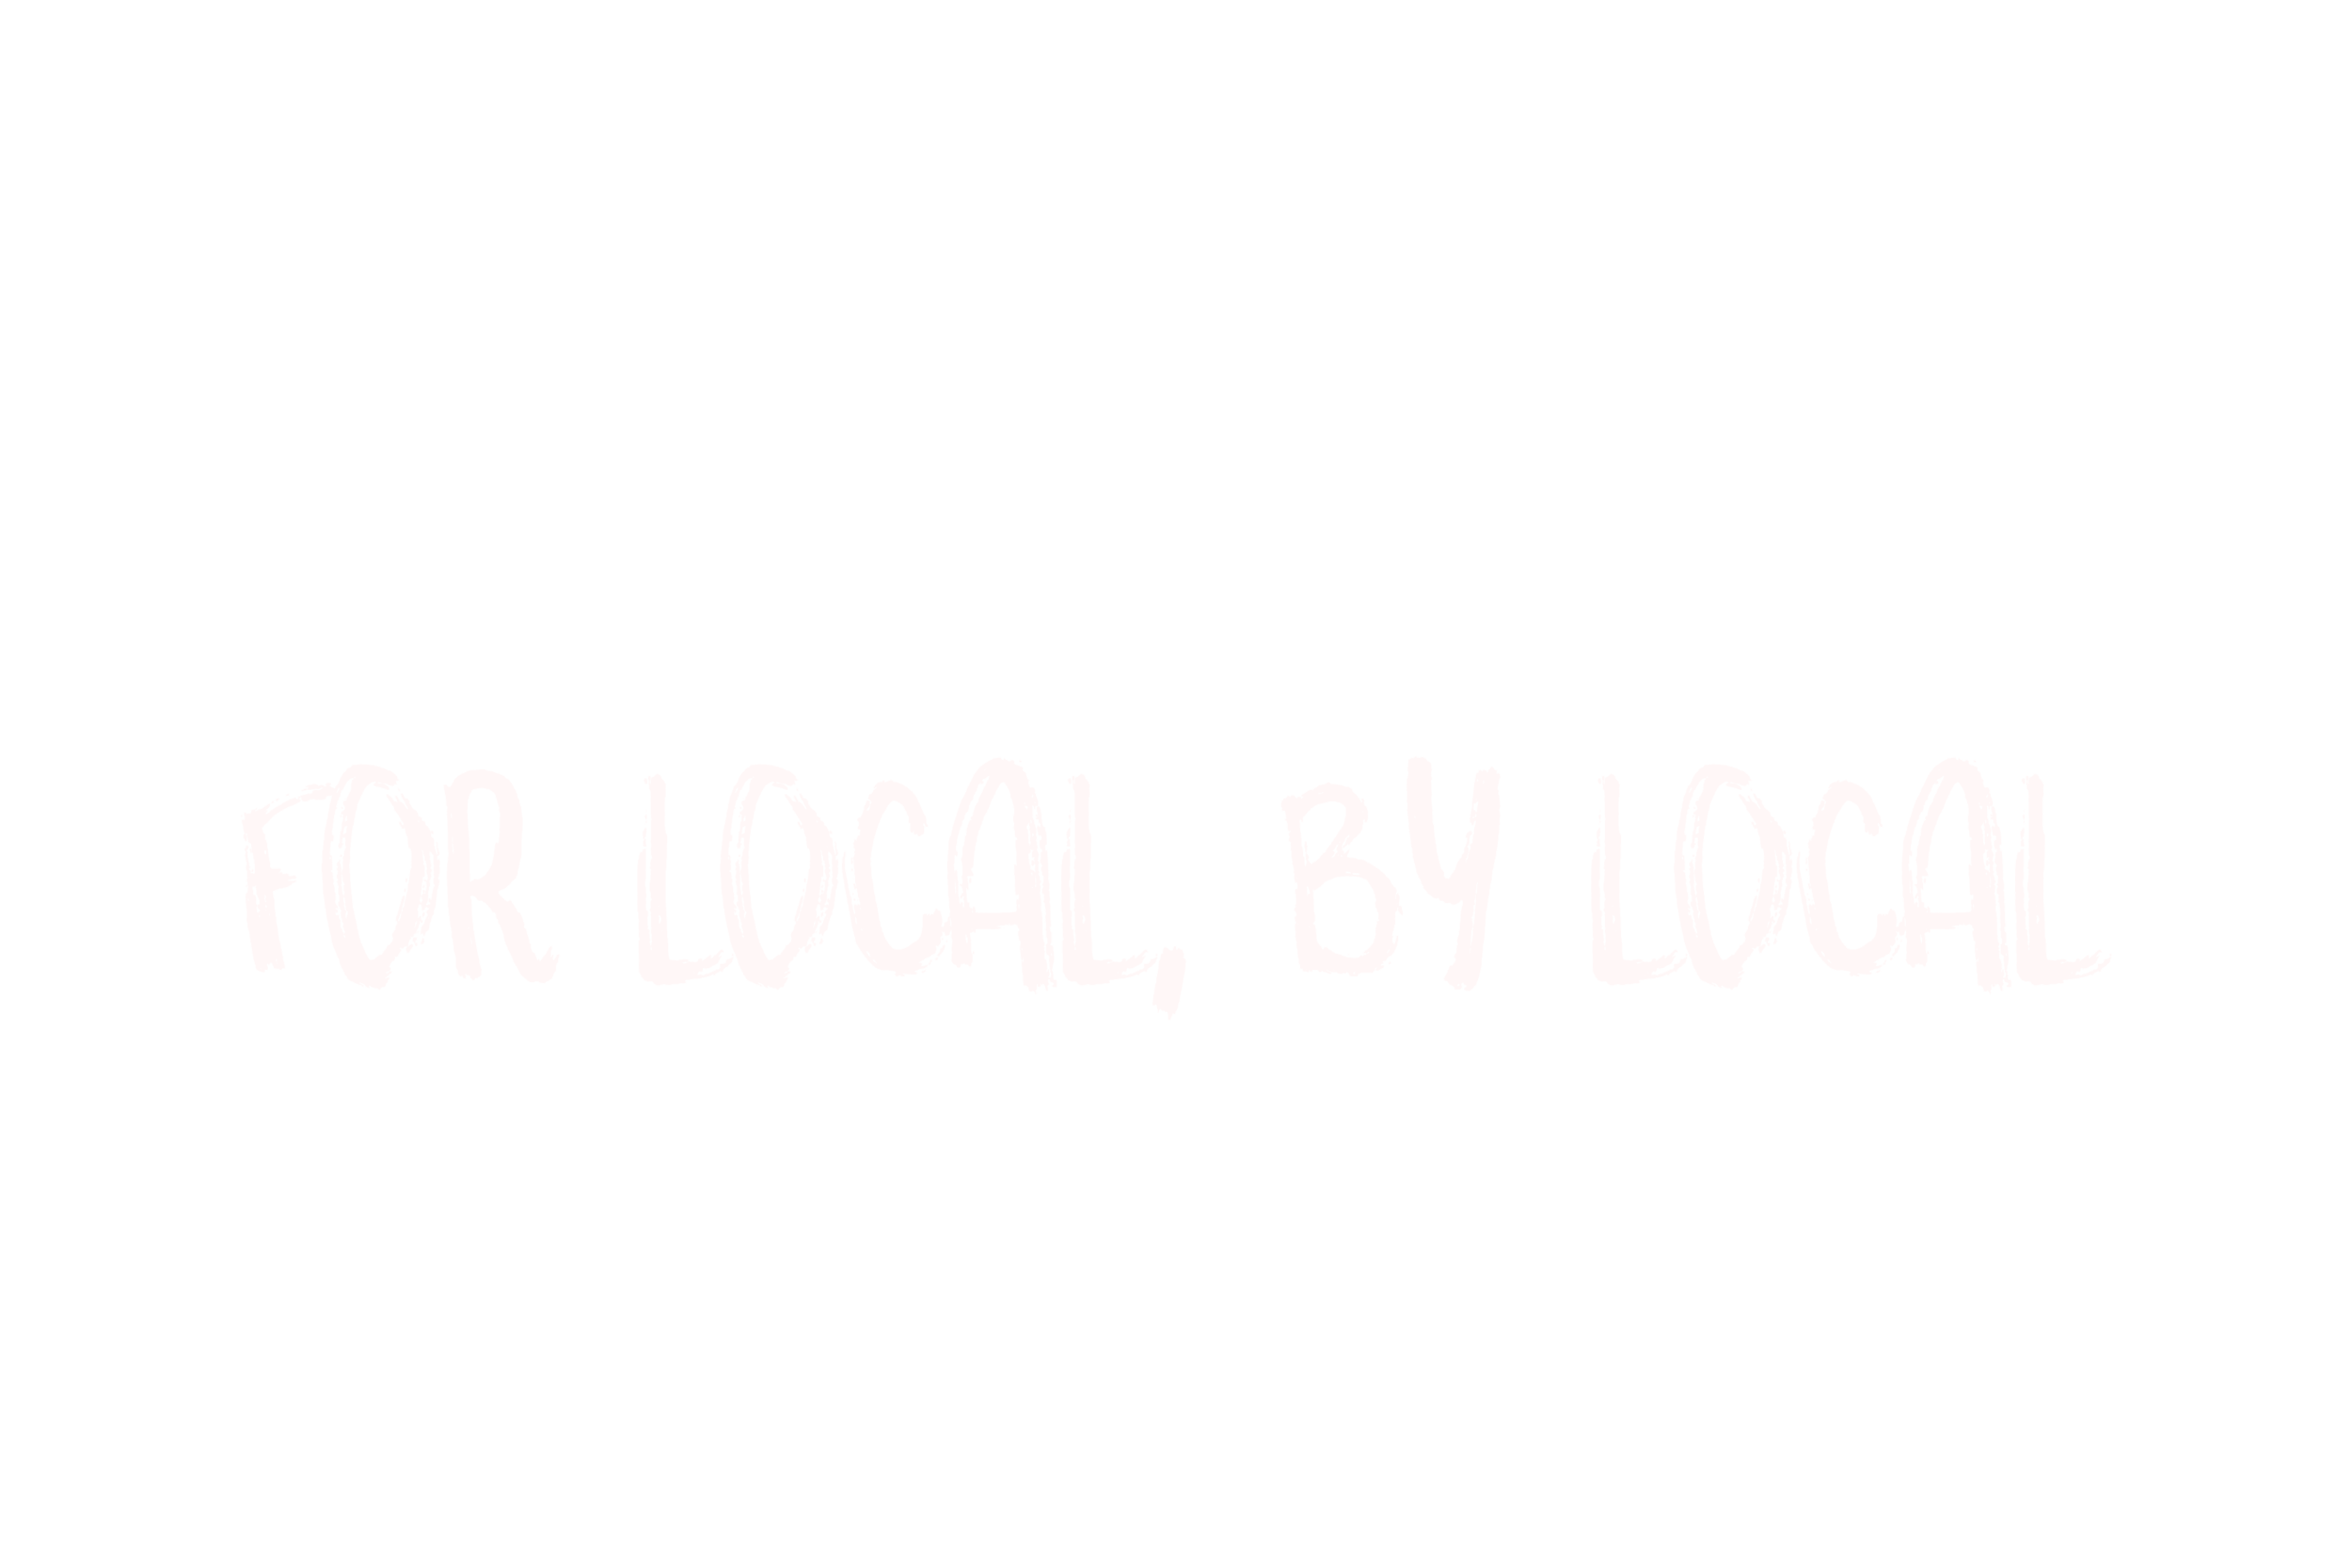 ForLocalByLocal_TXT.png